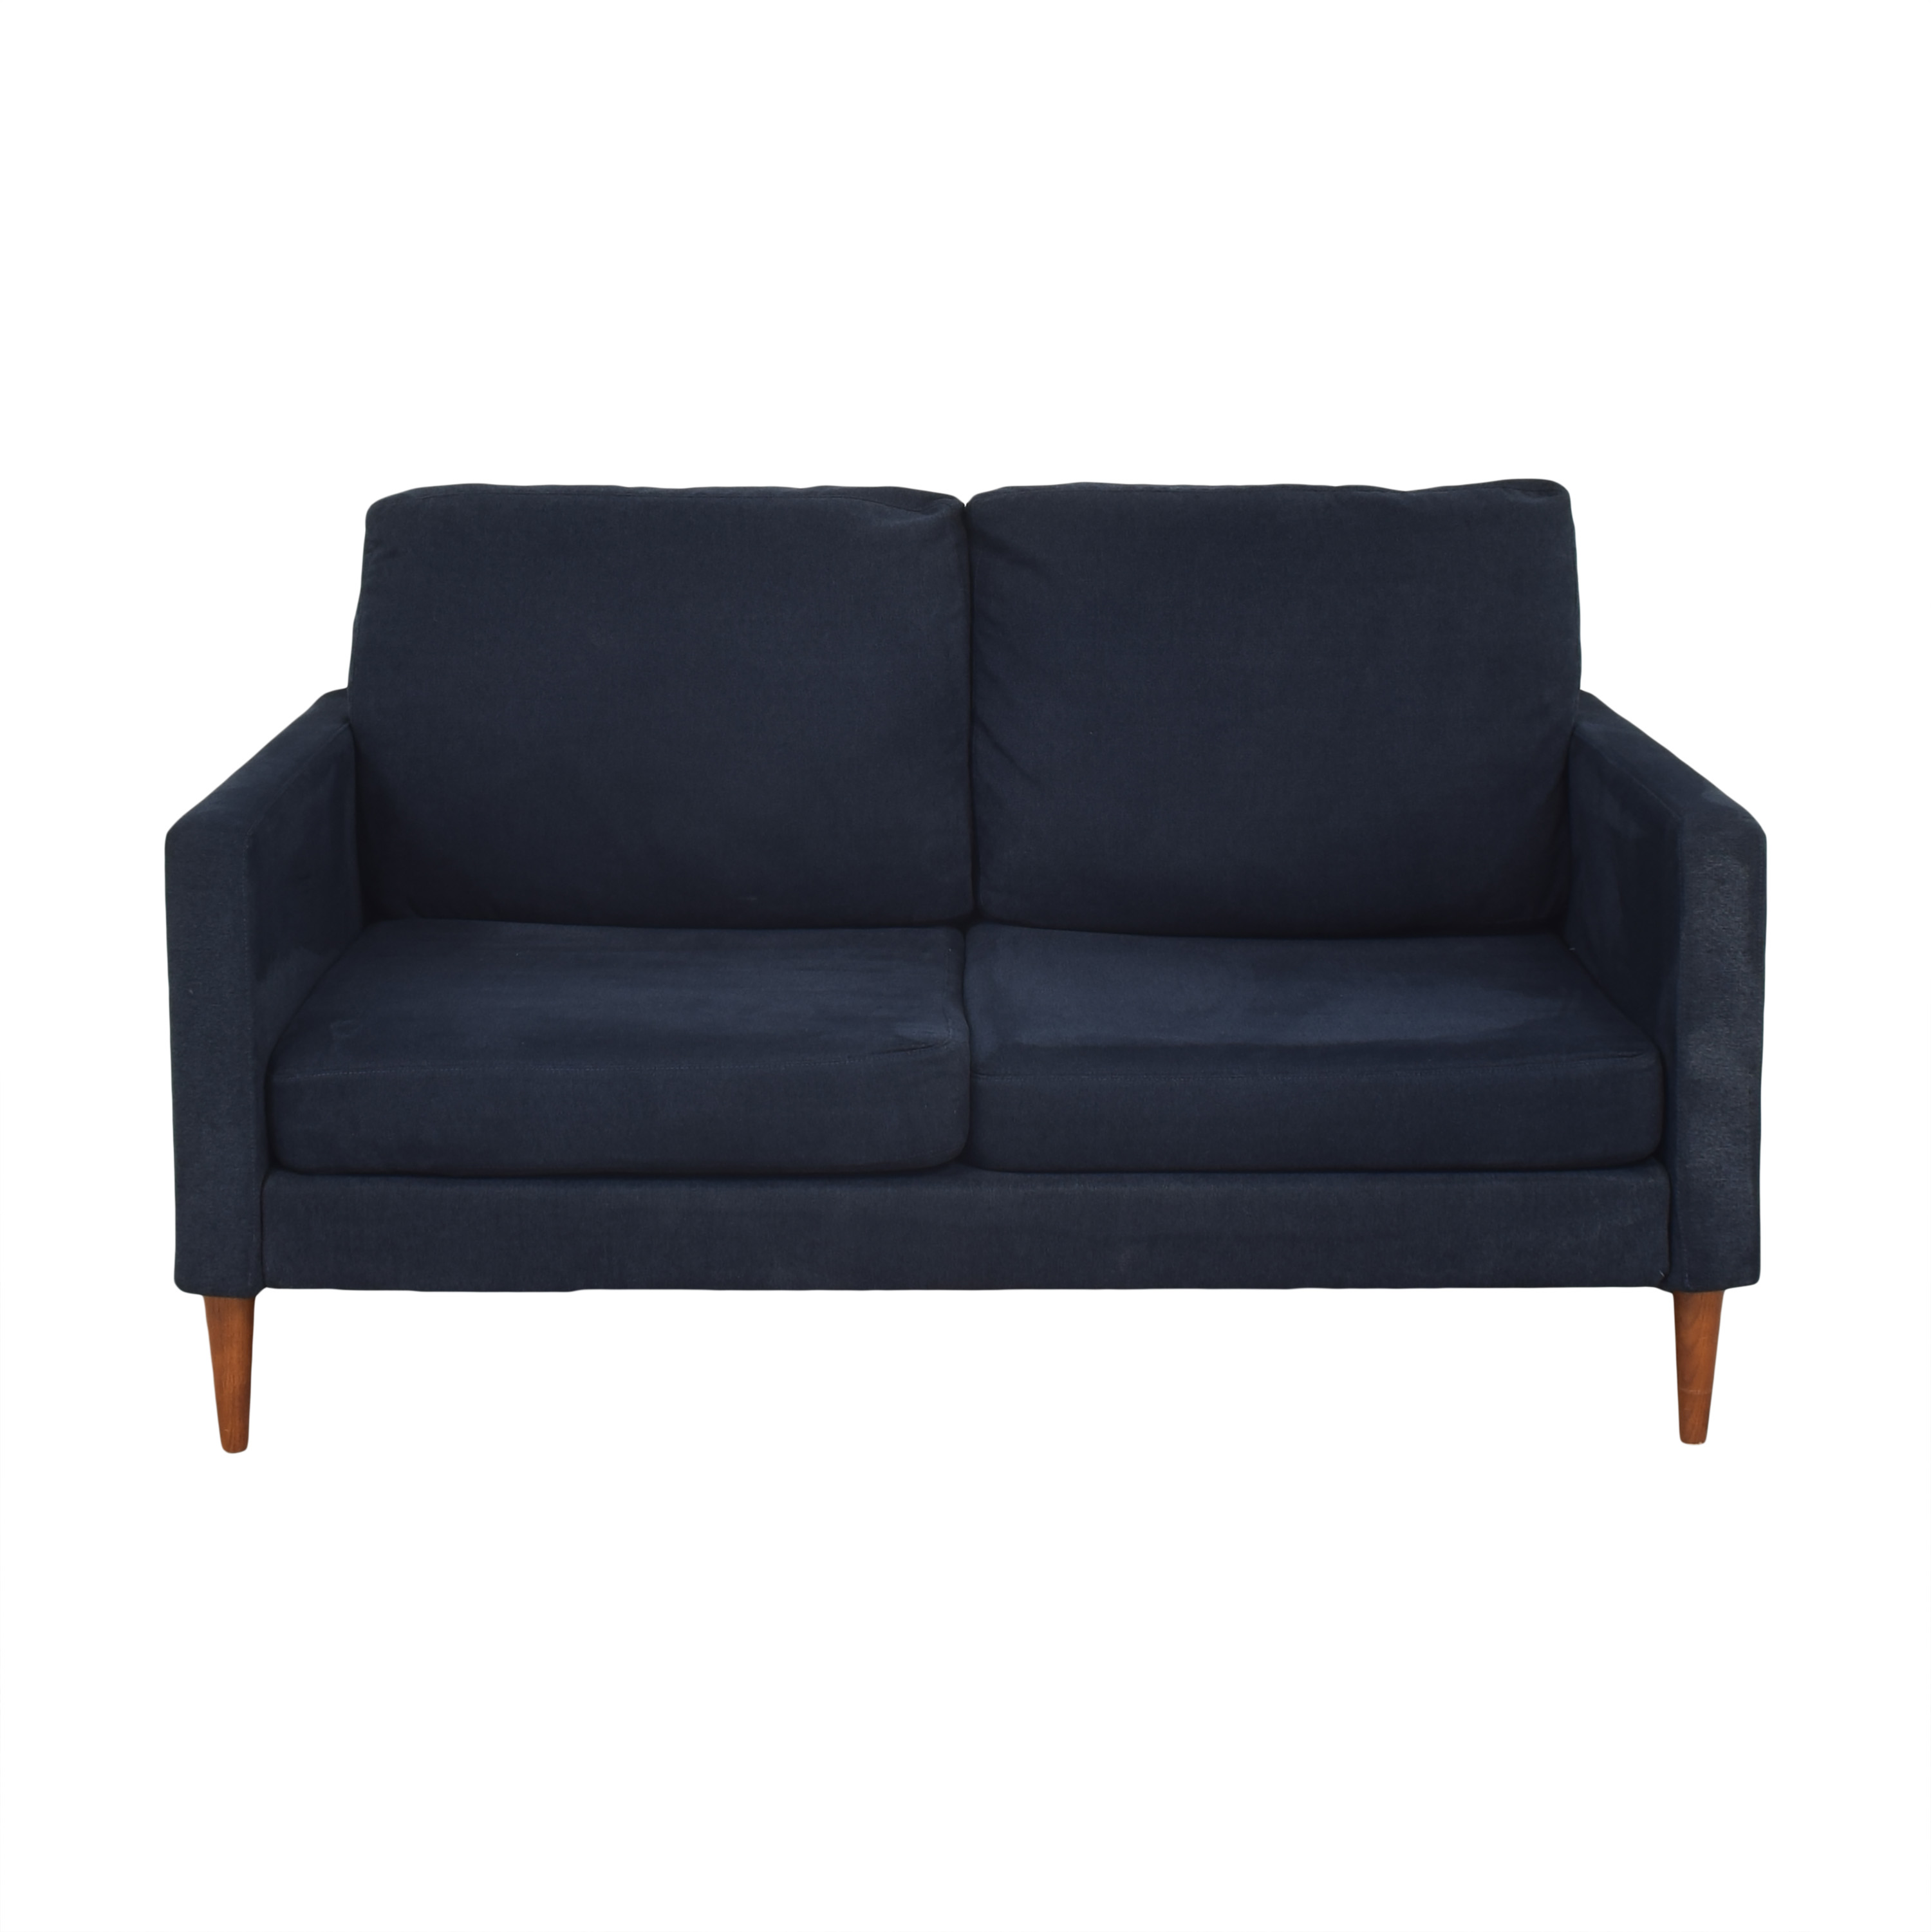 buy Campaign Modern Loveseat in Brushed Weave Midnight Navy Campaign Sofas